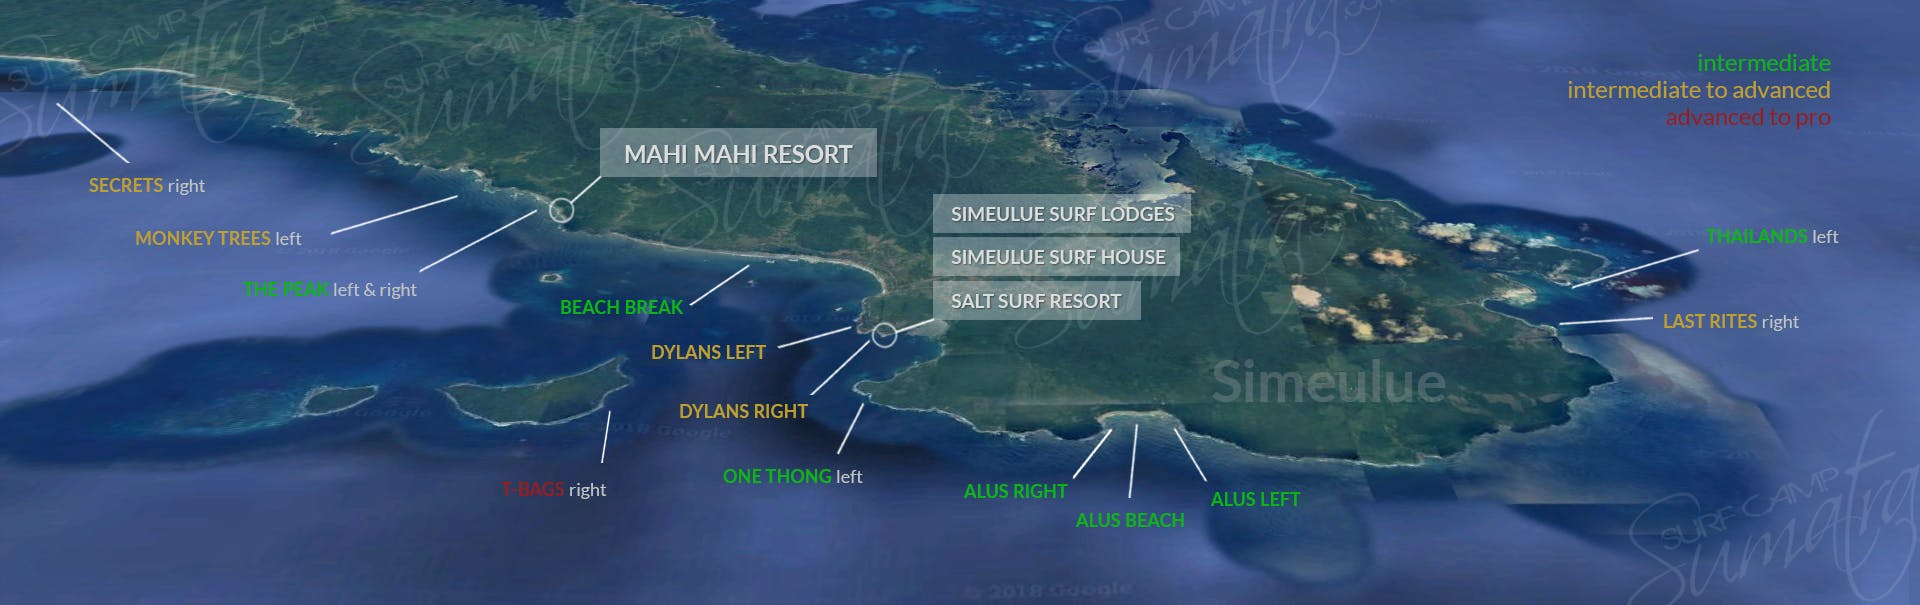 Simeulue surf map